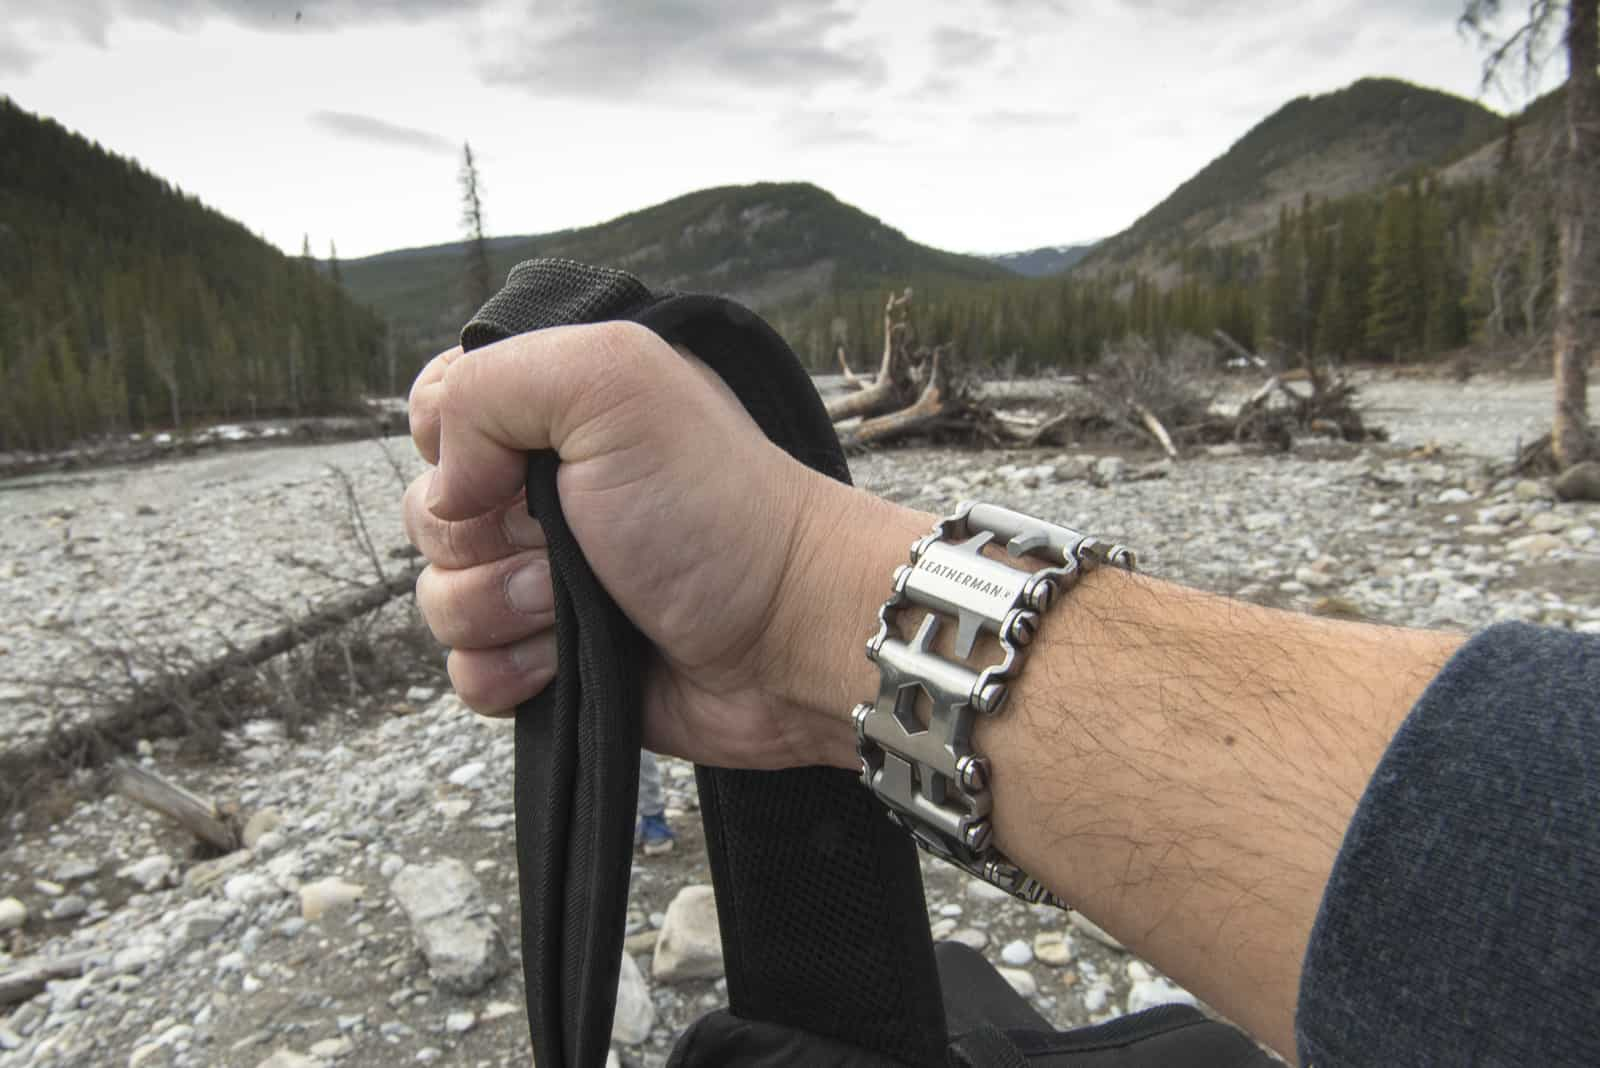 The Leatherman Tread Review: A Multi-tool for your Wrist